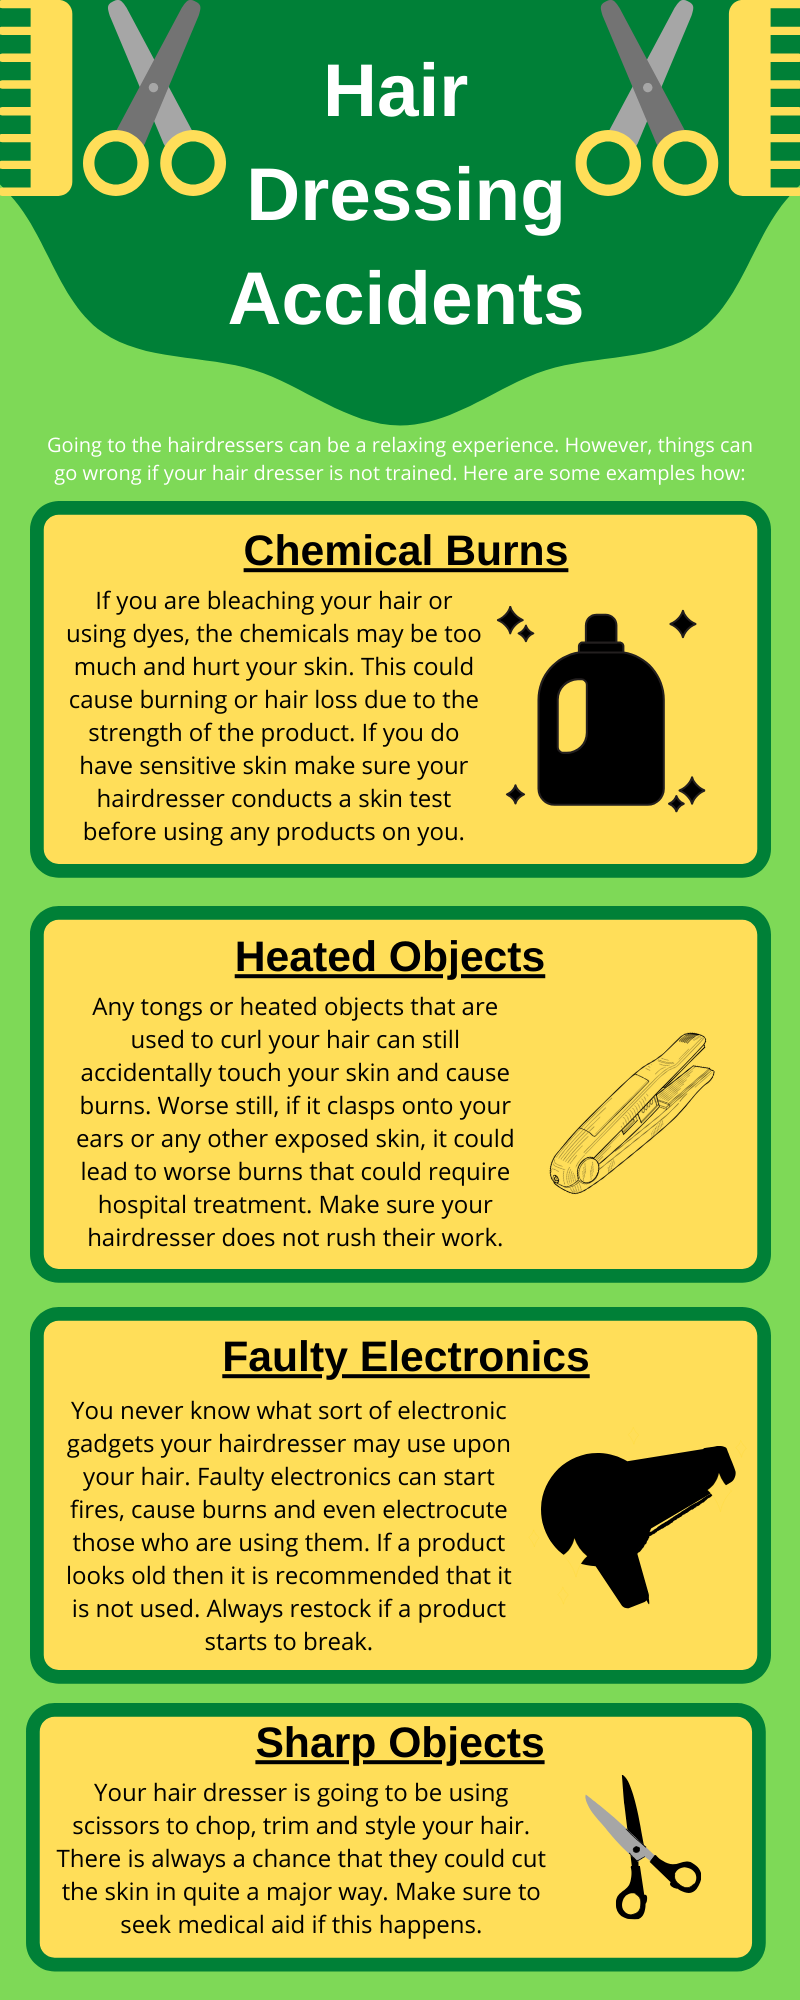 hairdressing accidents infographic